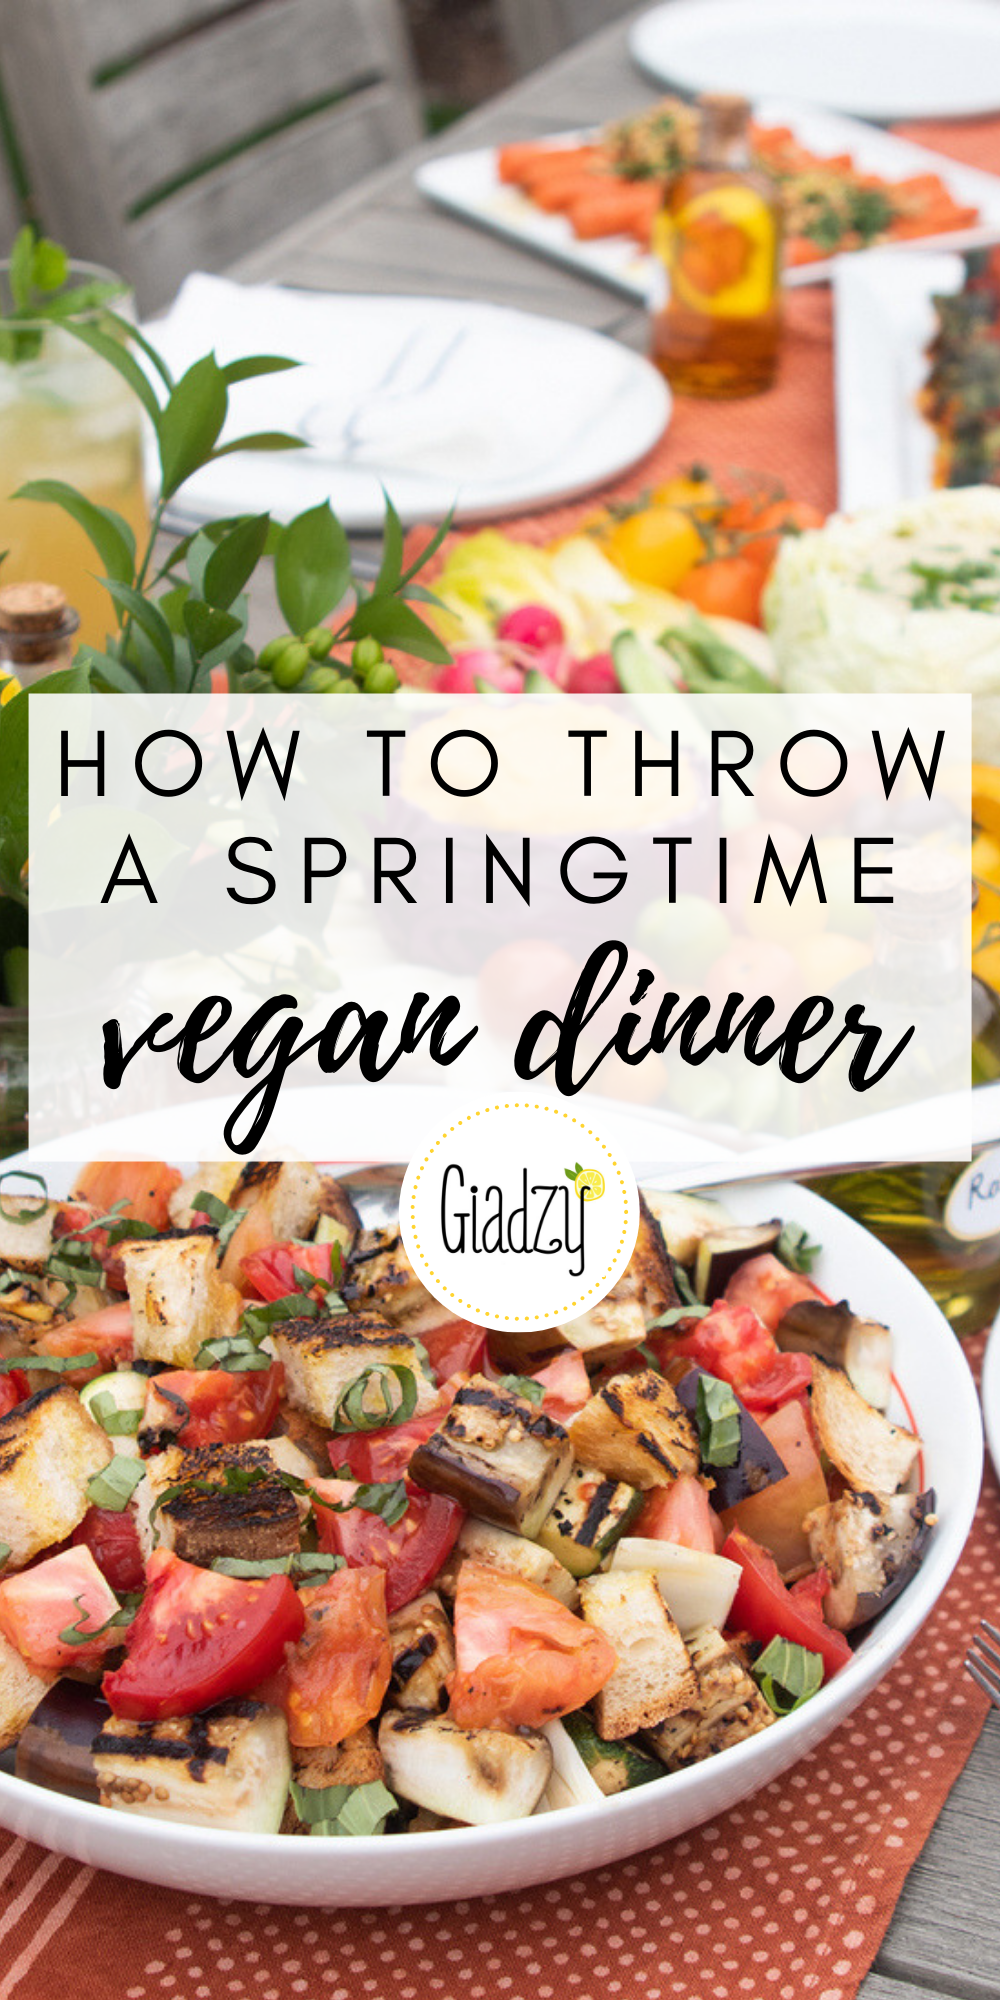 Celebrate Spring With This Vegan Dinner Party Giadzy Vegetarian Dinner Party Vegan Dinner Party Dinner Party Recipes